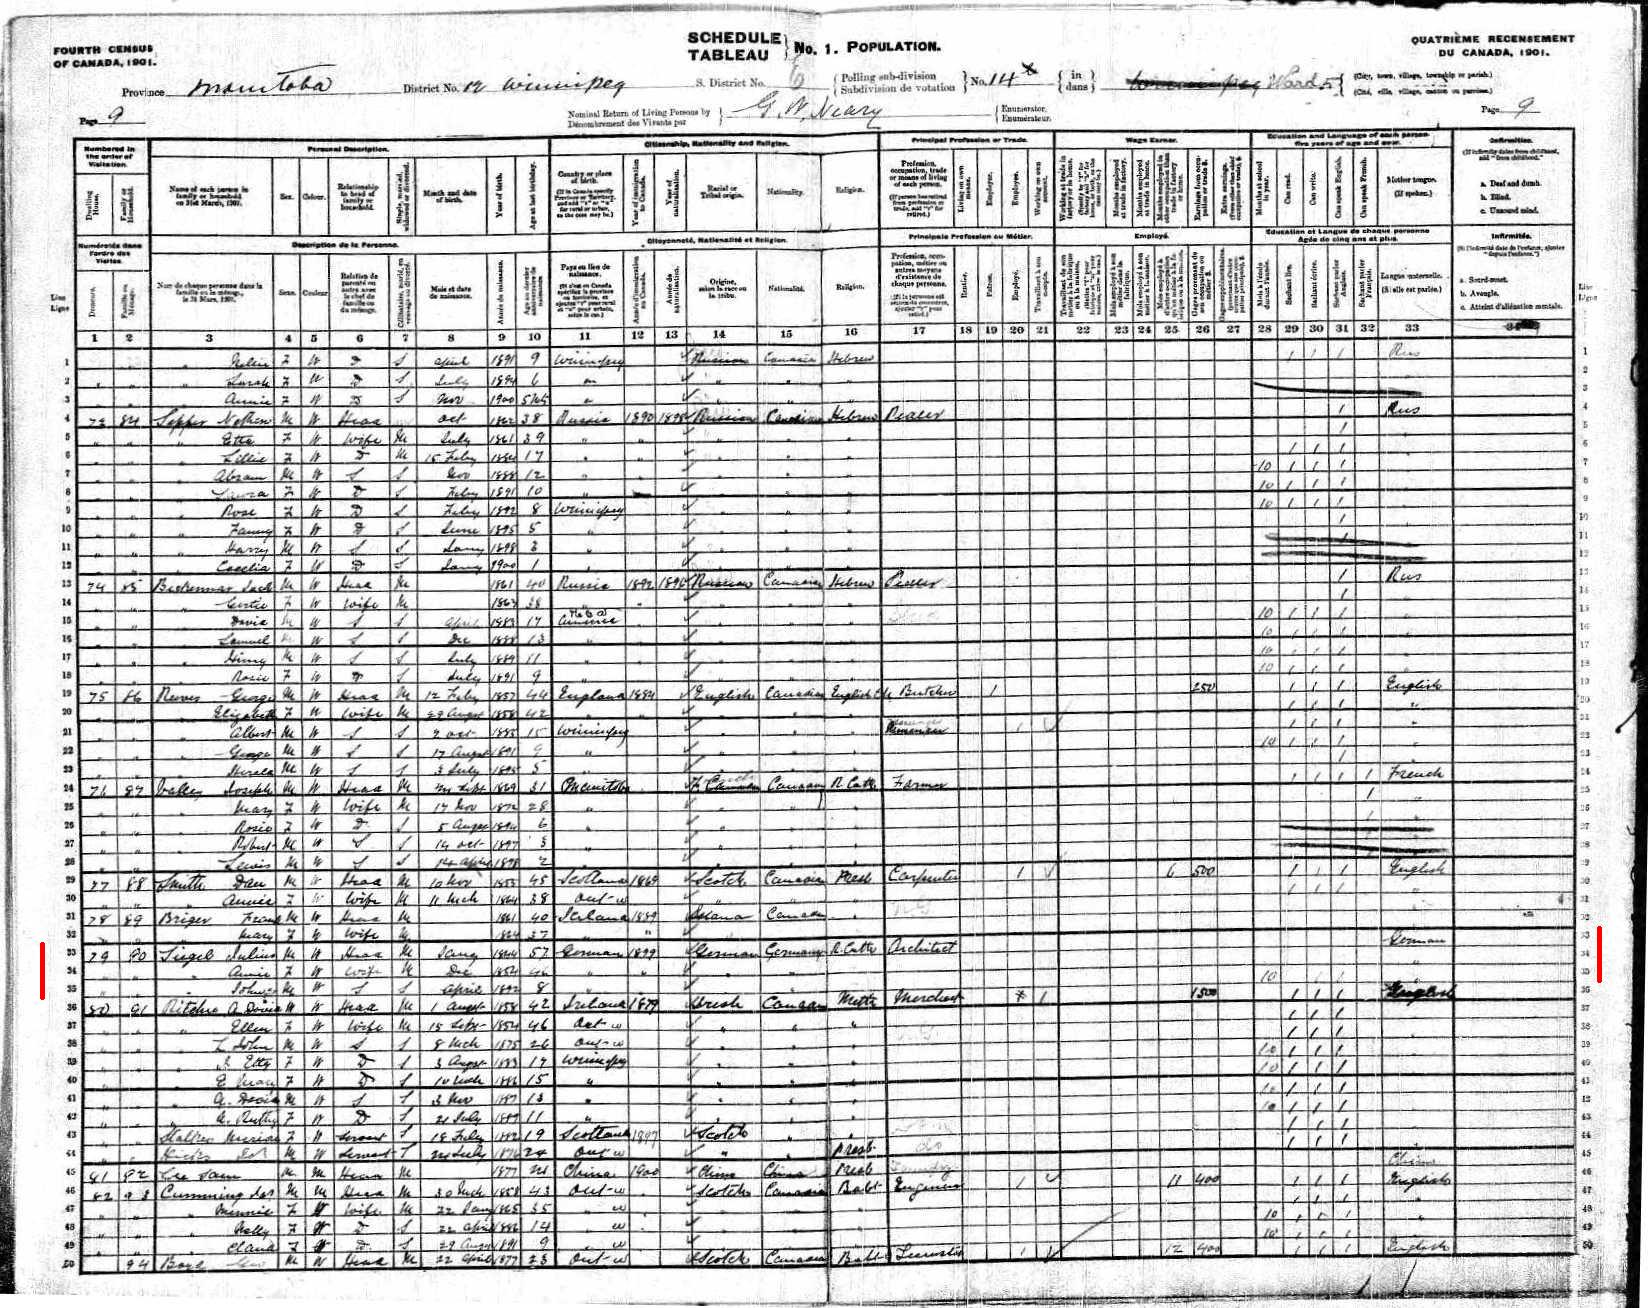 A ledger from the 1901 census in Winnipeg.